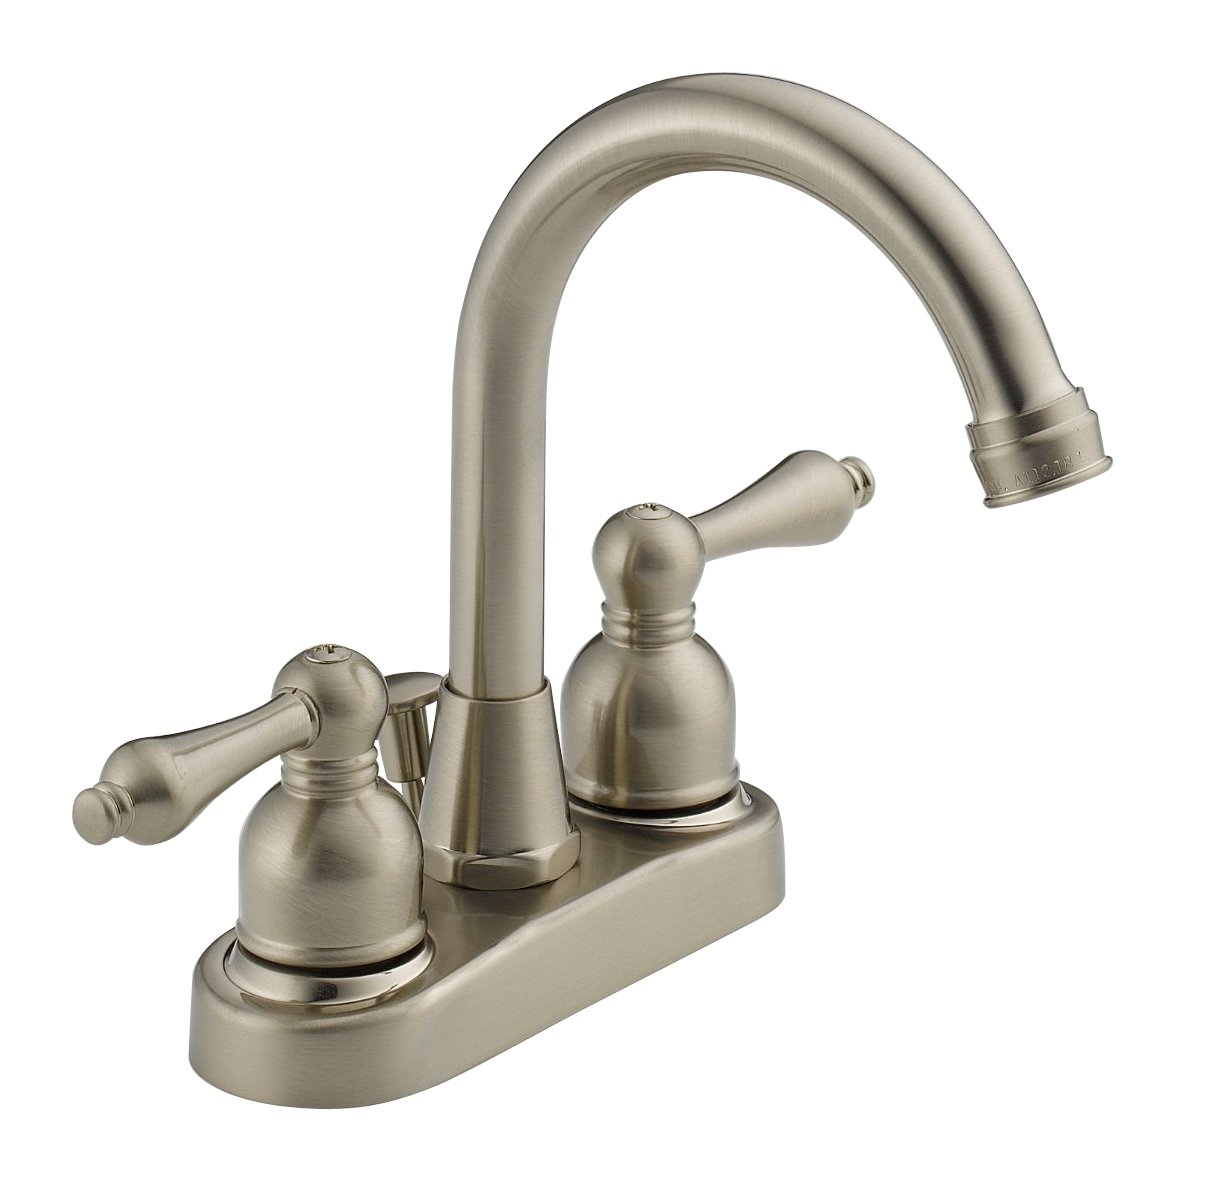 Westbrass WAS00X-07 Two handle Hi-Arc Spout Centerset Bathroom Faucet, Satin Nickel